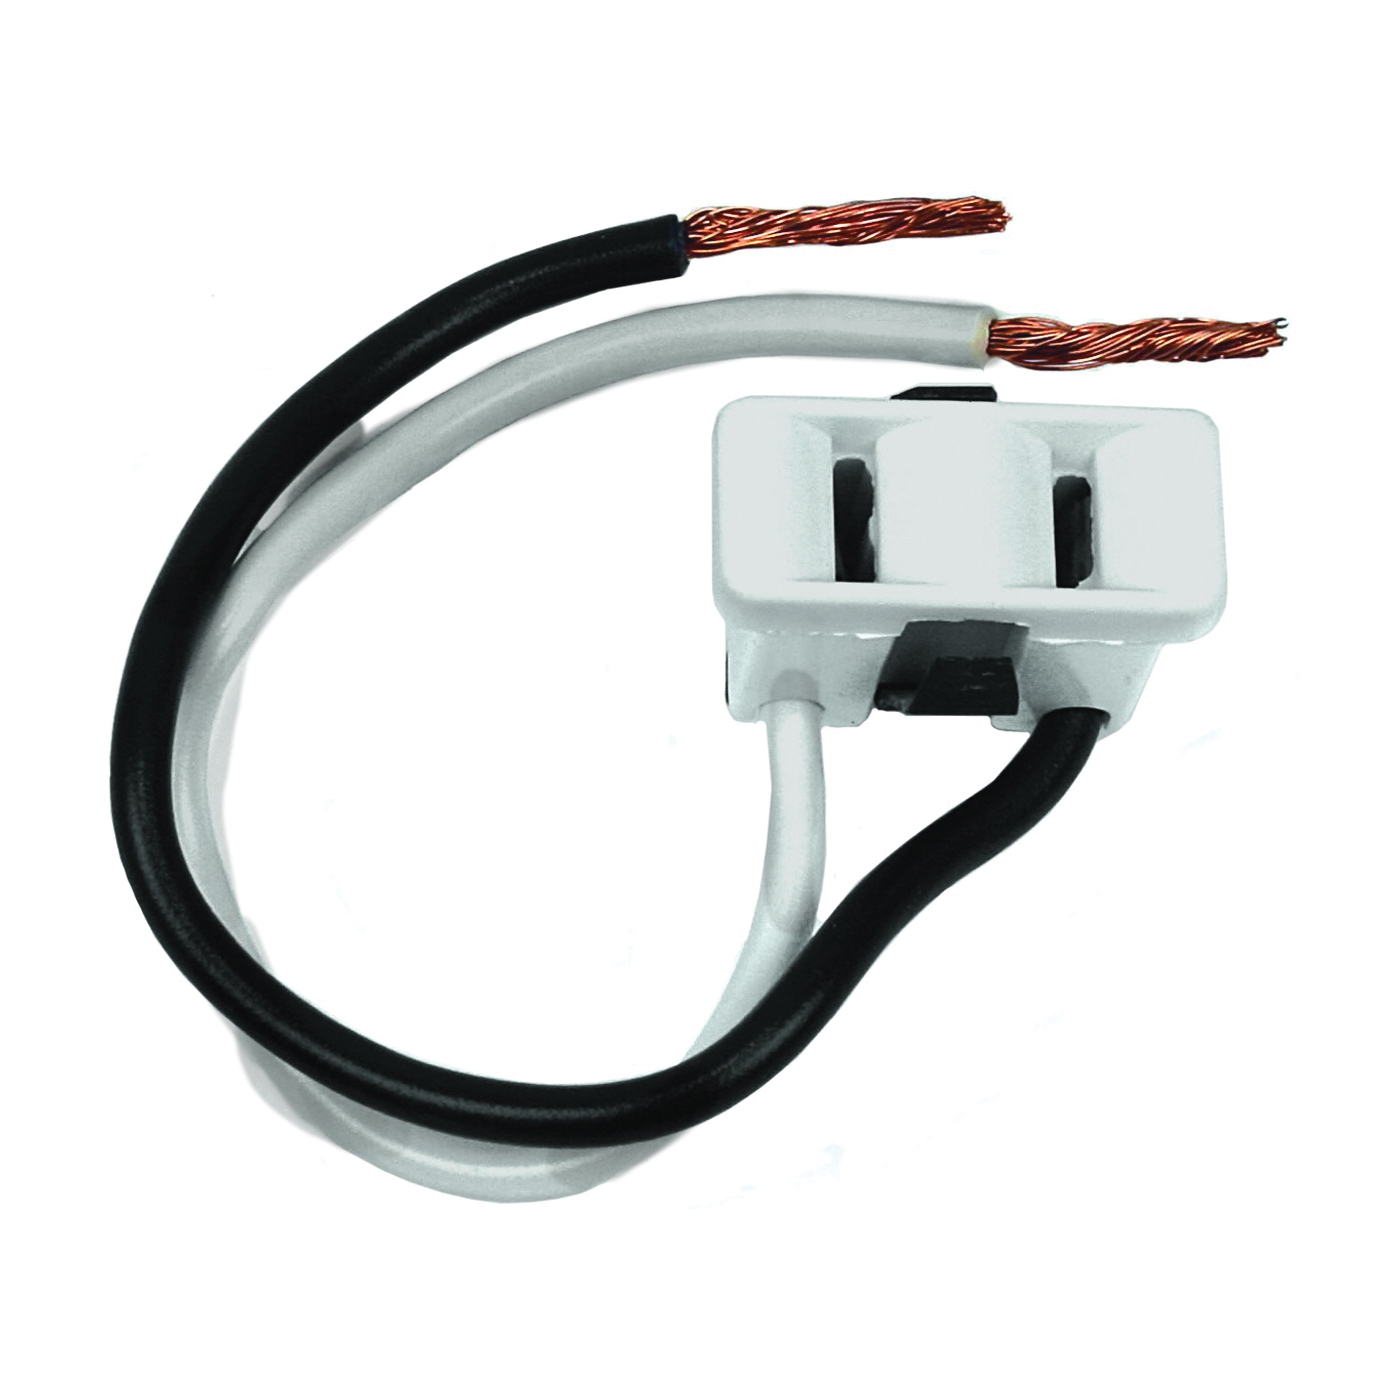 Picture of Jandorf 61015 Single Receptacle, 2-Pole, 125 V, 15 A, White